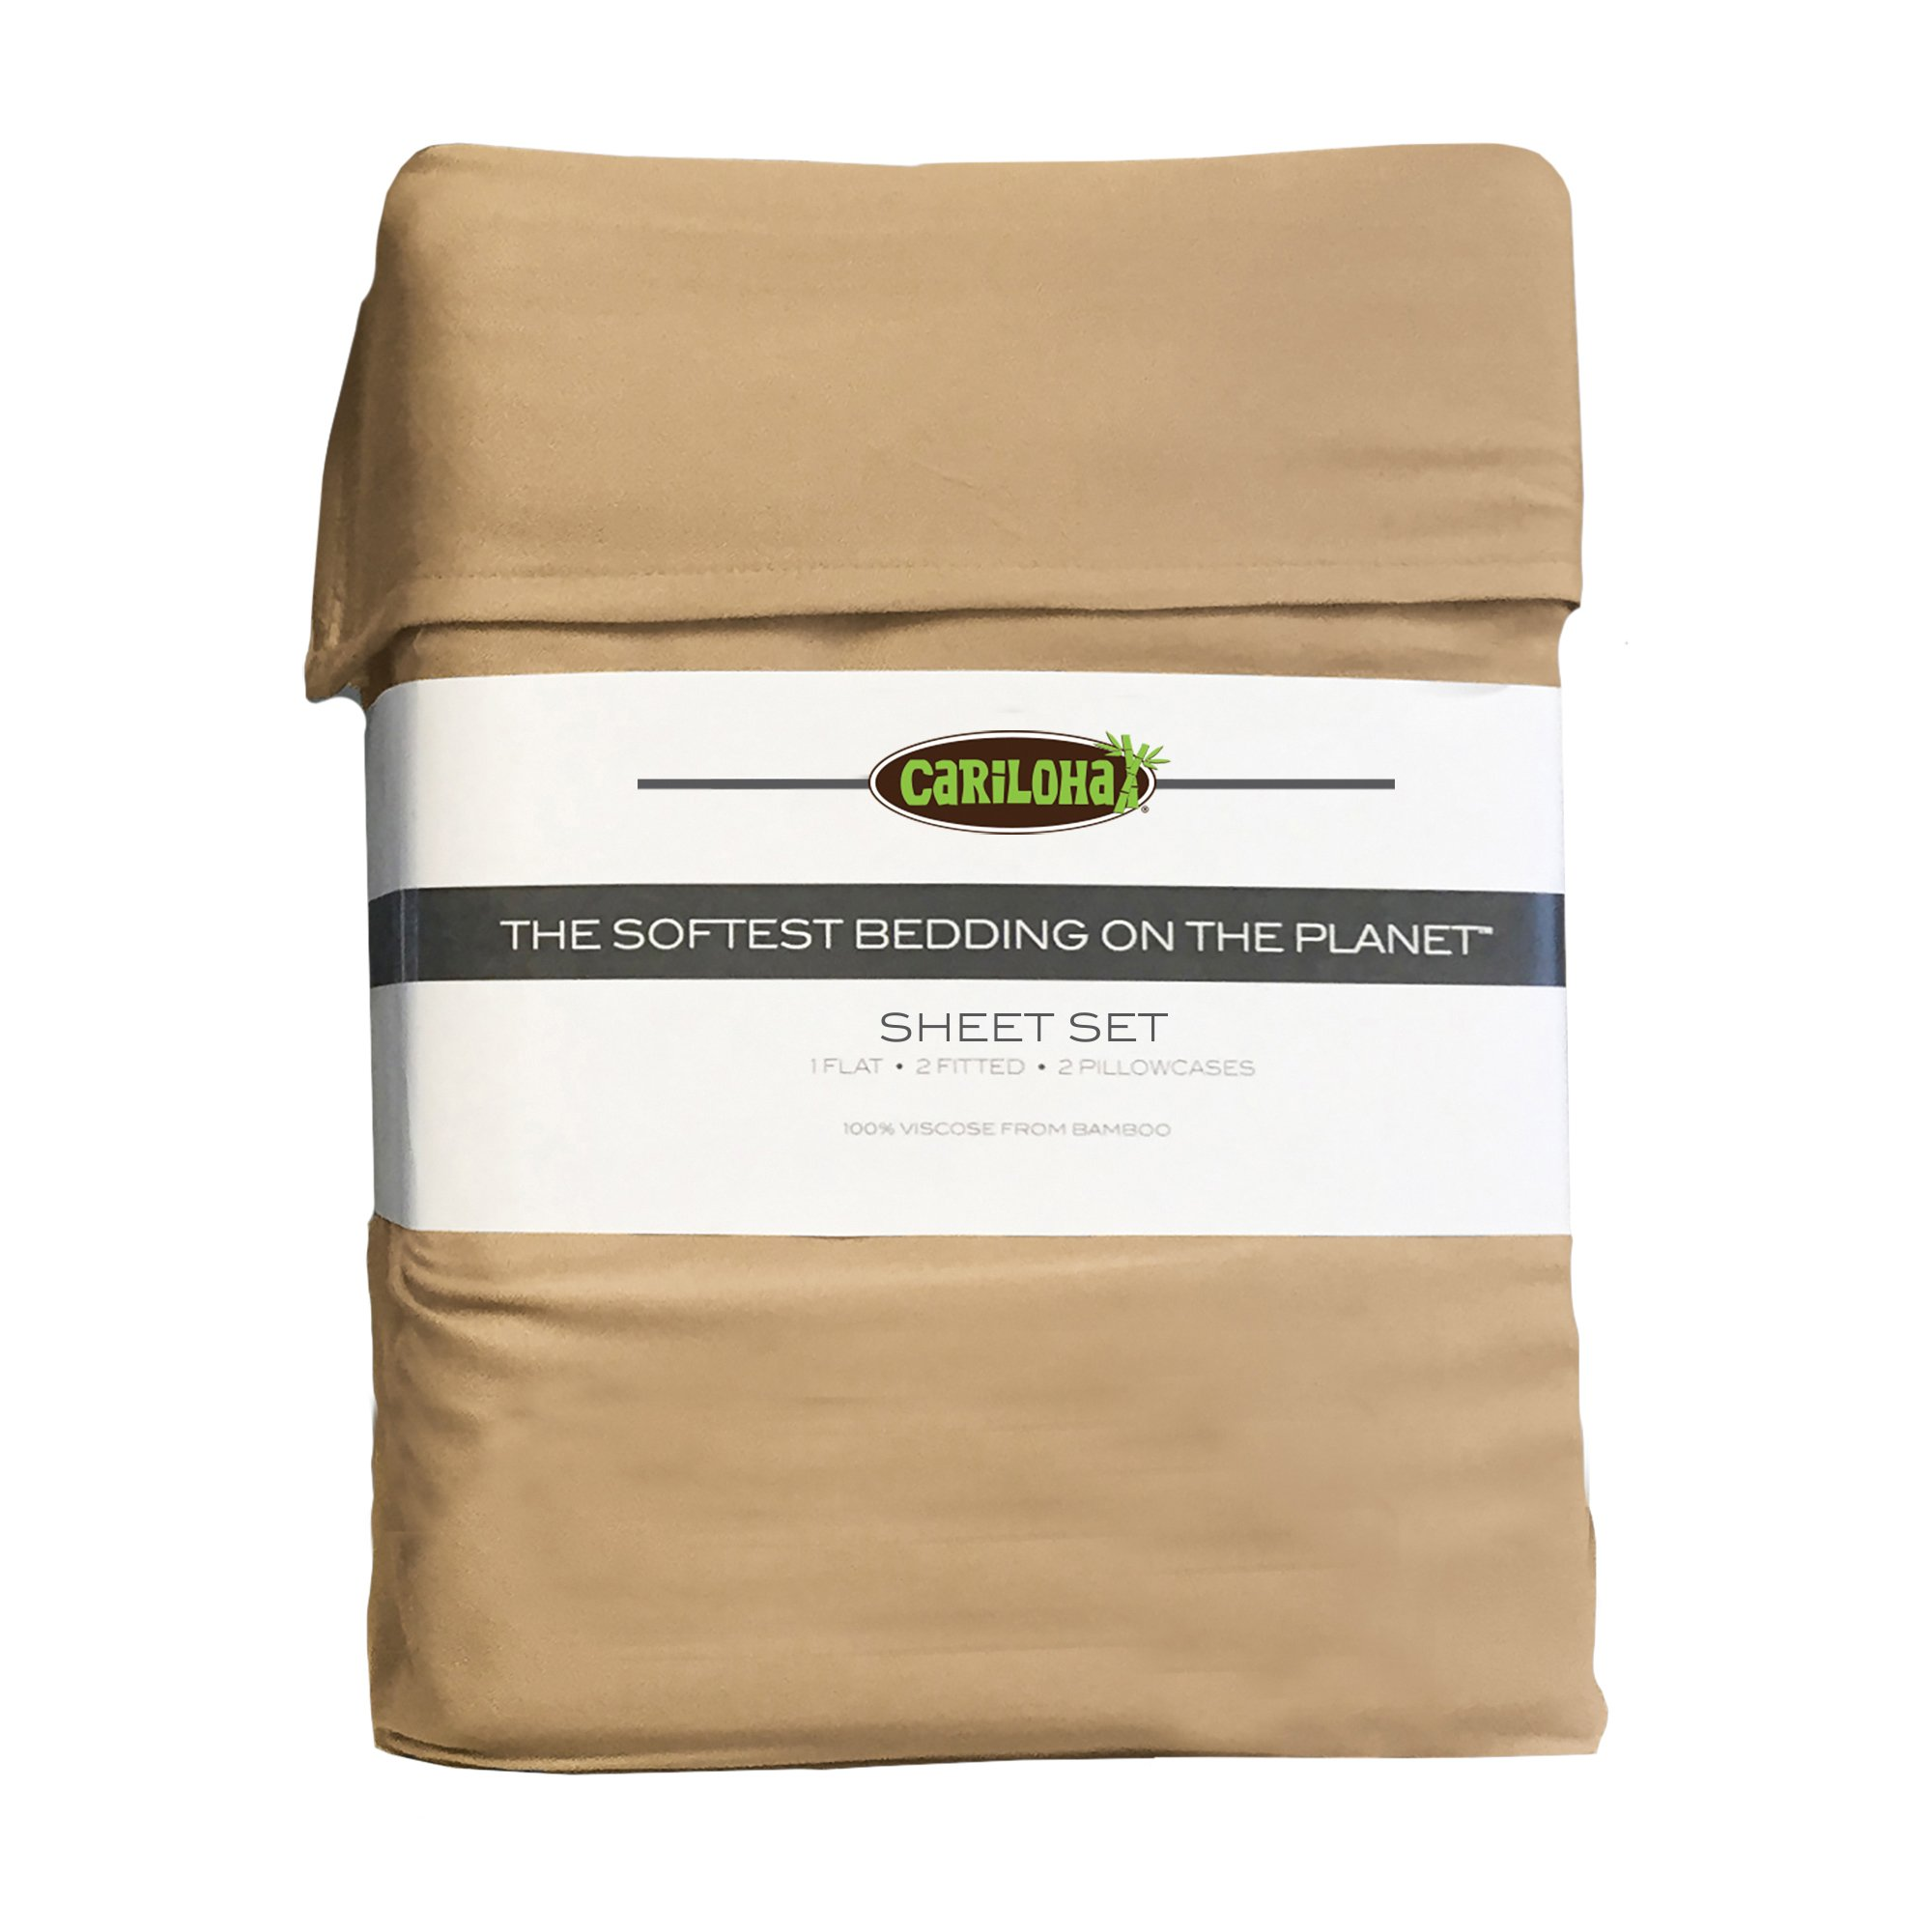 Classic Bamboo Sheets by Cariloha - 4 Piece Bed Sheet Set - Softest Bed Sheets and Pillow Cases - Lifetime Protection (King, Sandy Shore) by Cariloha (Image #3)